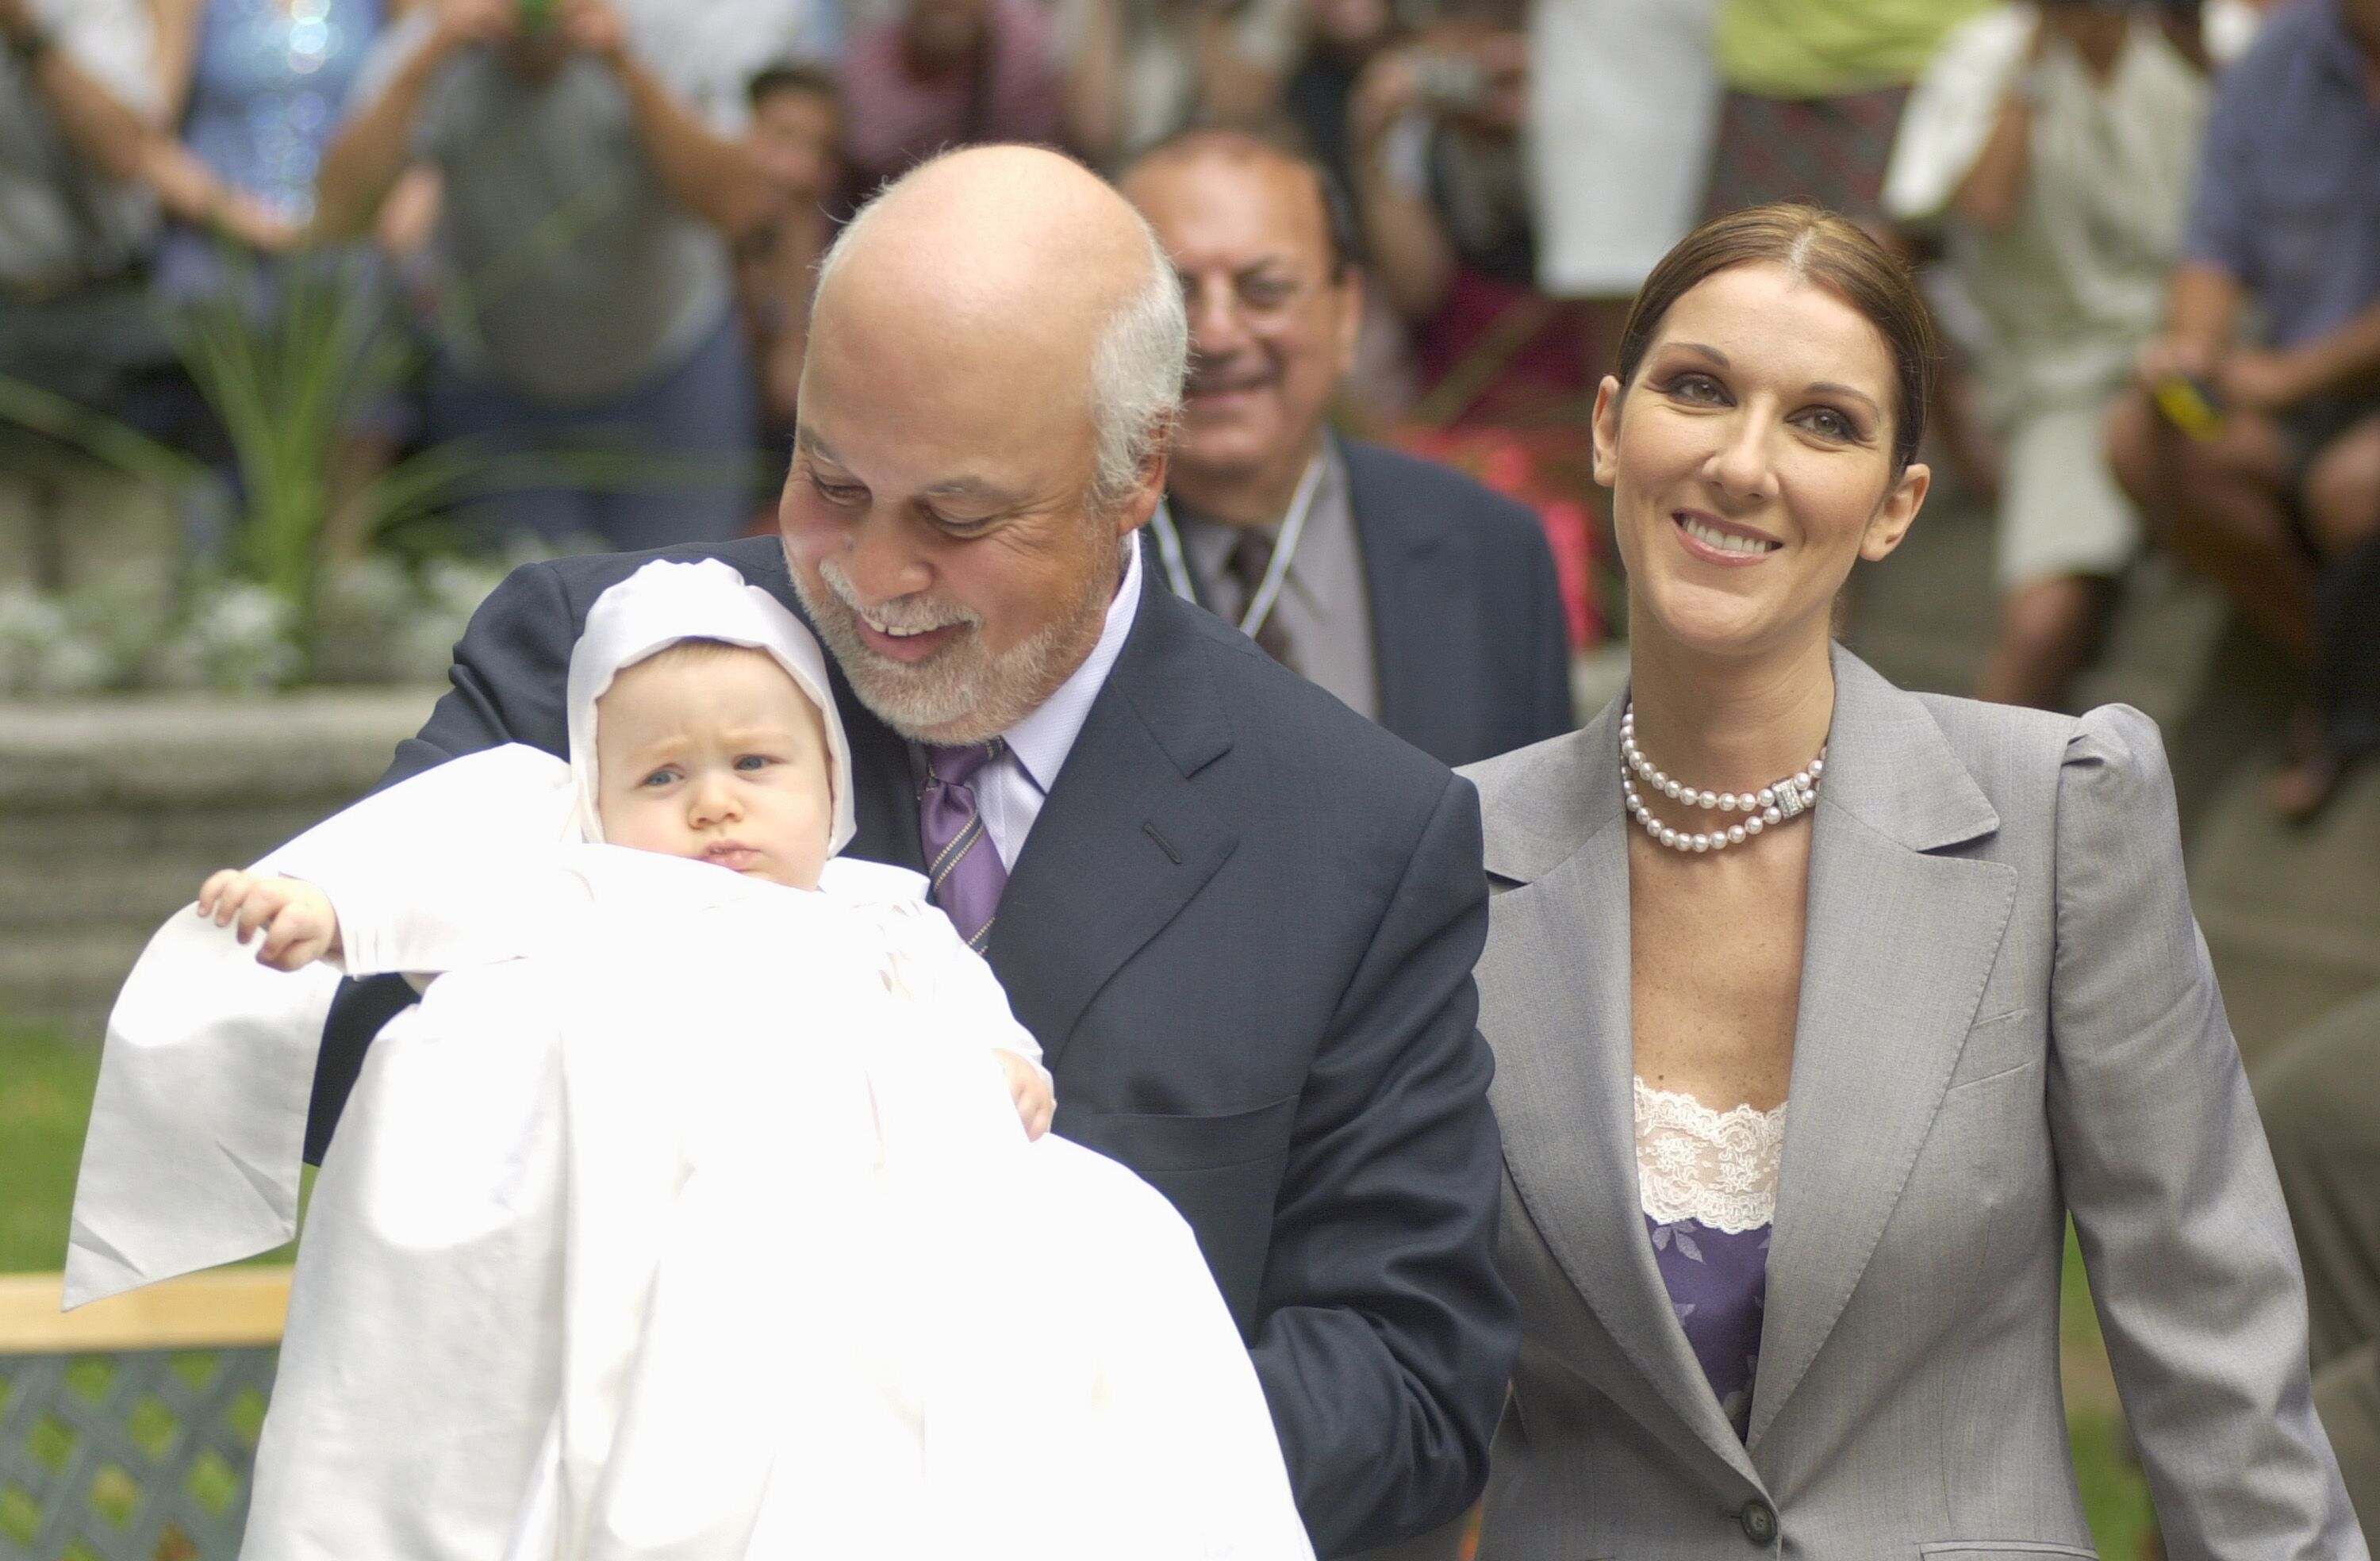 Celine Dion and husband Rene Angelil with their baby Rene-Charles outside the chapel of the Notre-Dame Basilica in Montreal | Source: Getty Images